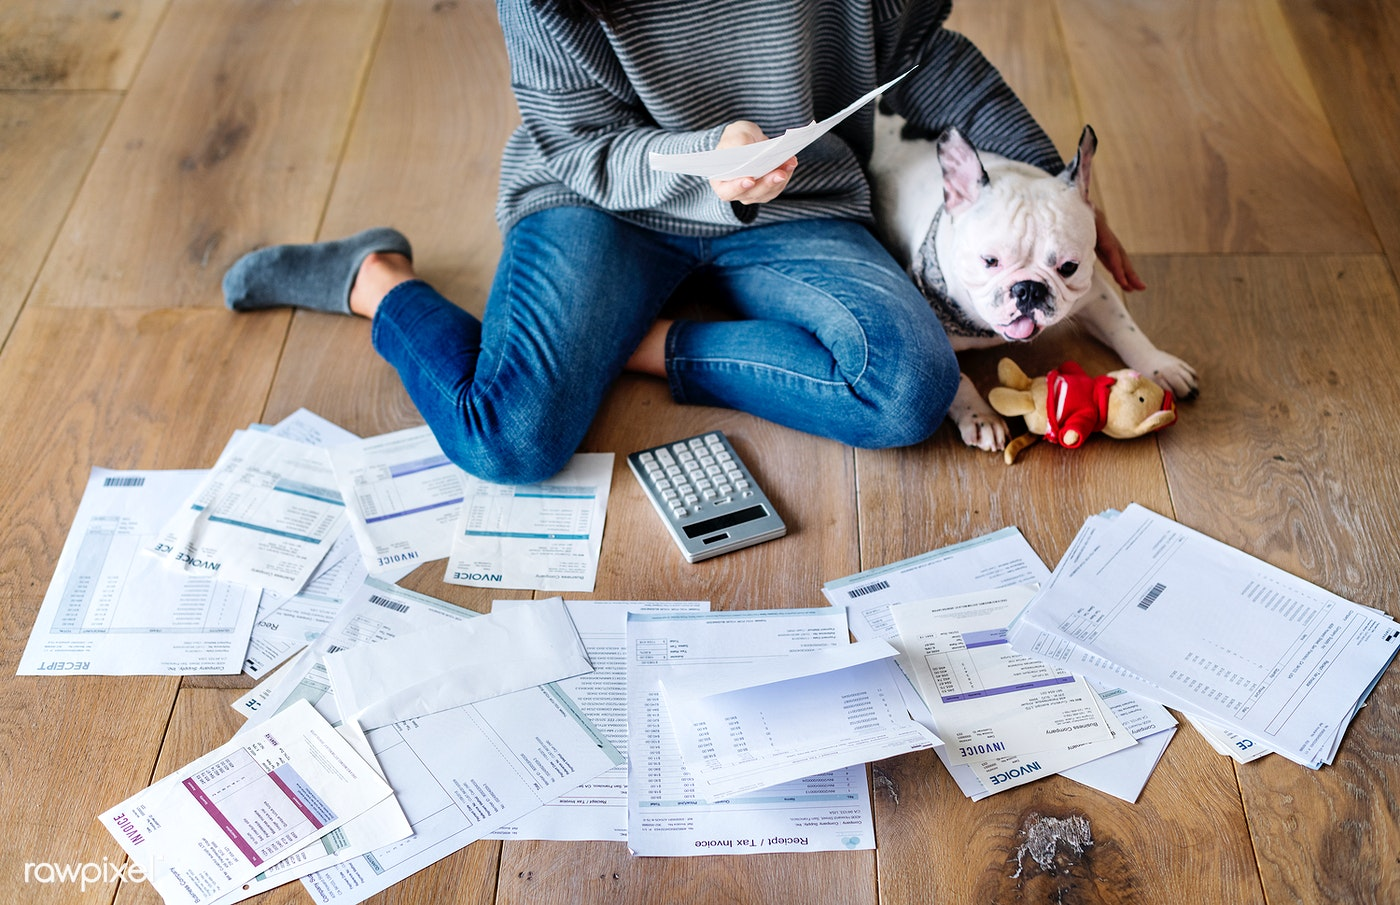 Sorting out a pile of bills on the floor